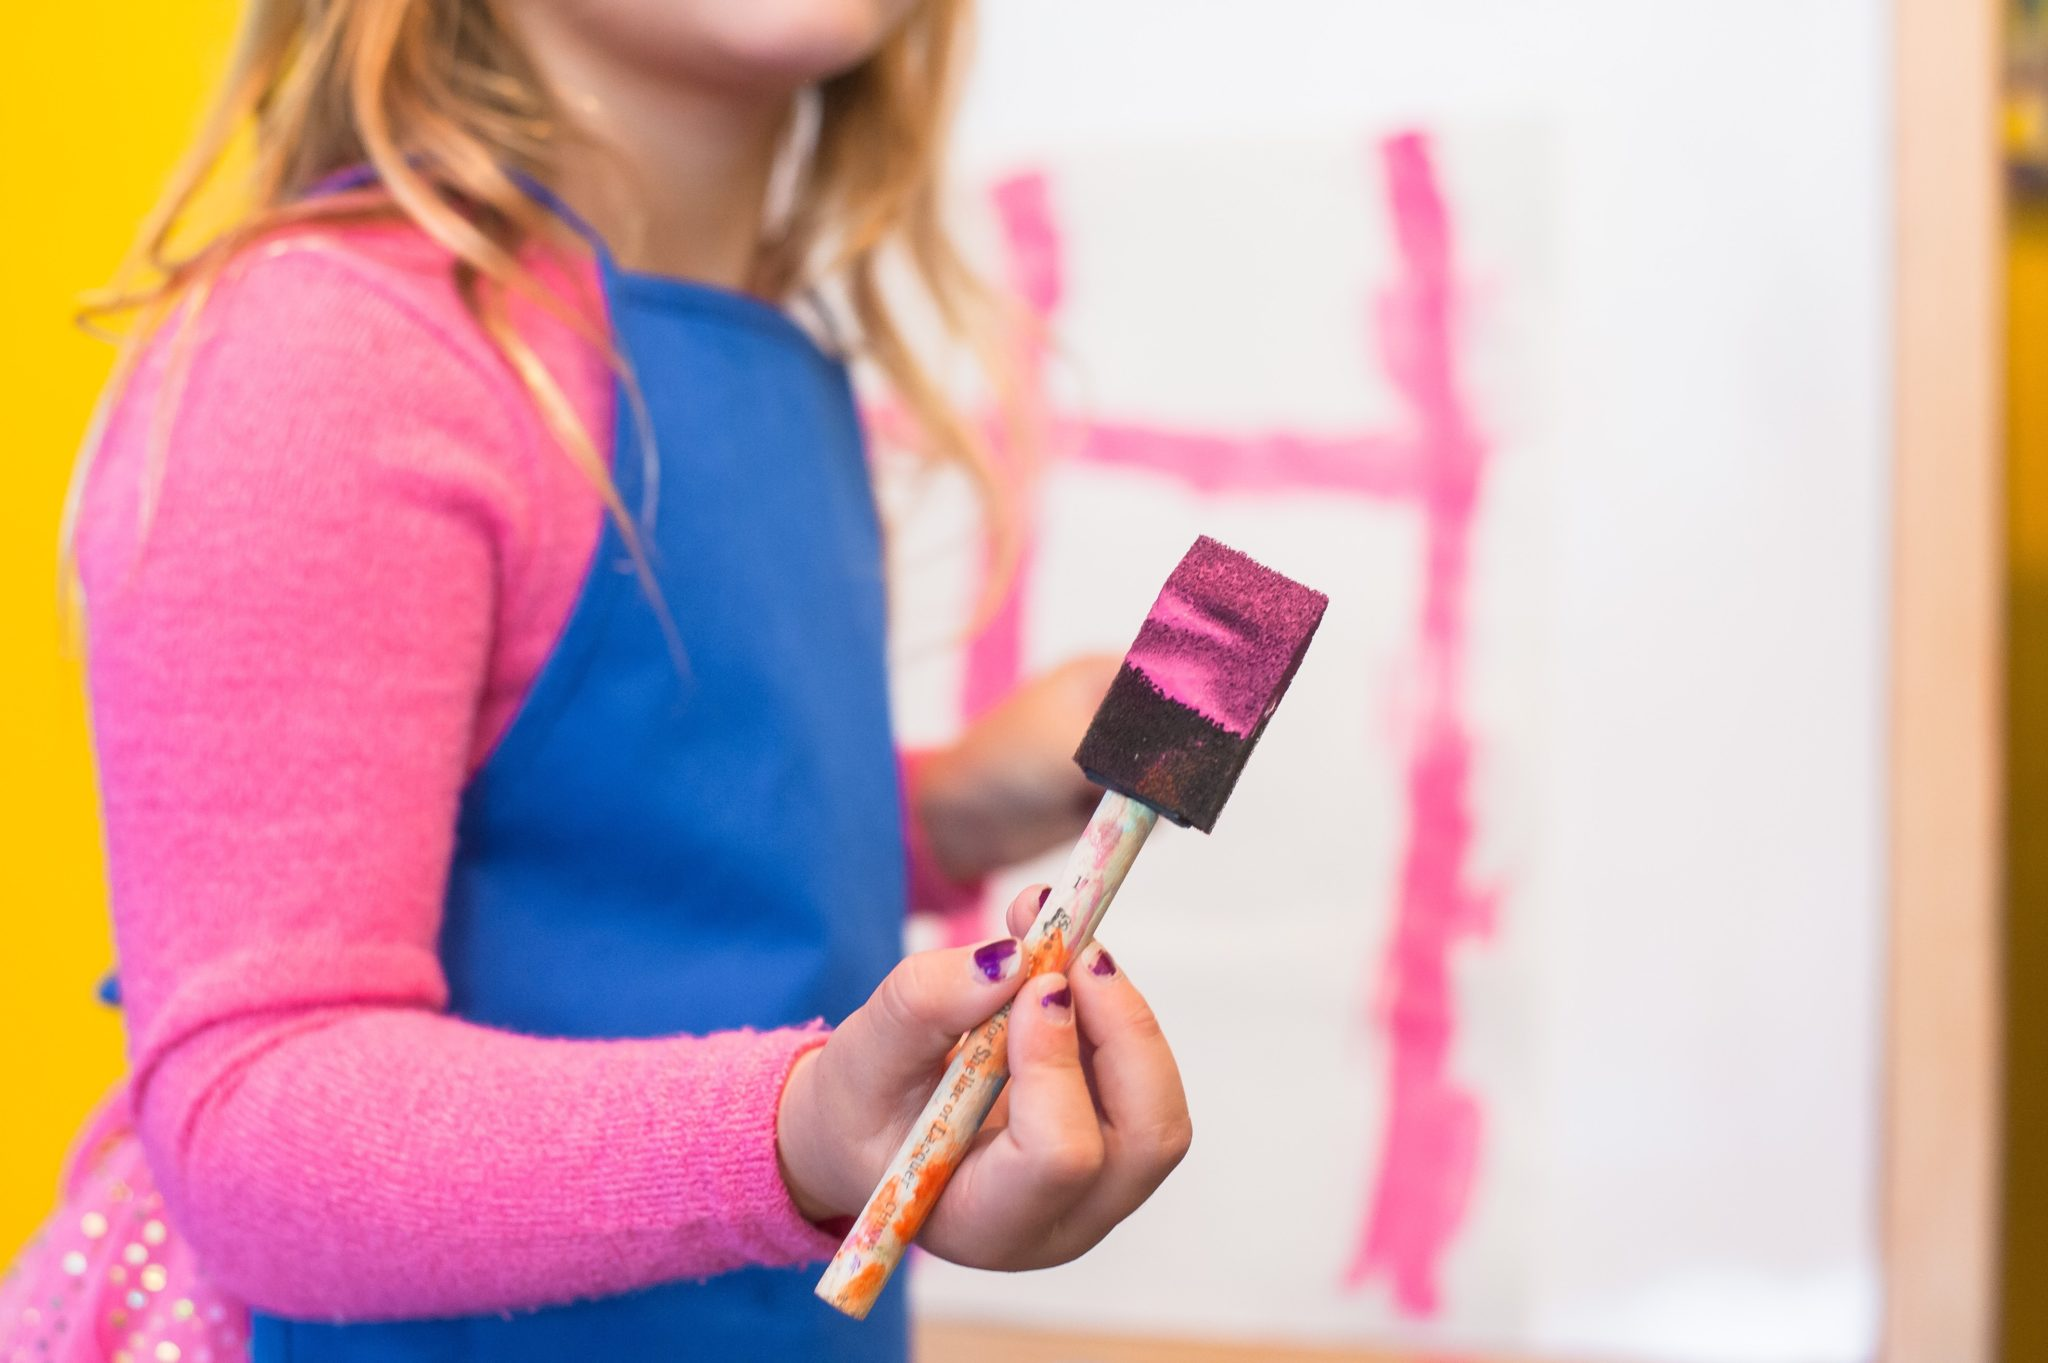 A girl wearing a blue apron holding onto a pink paint brush having fun with her face slightly hidden